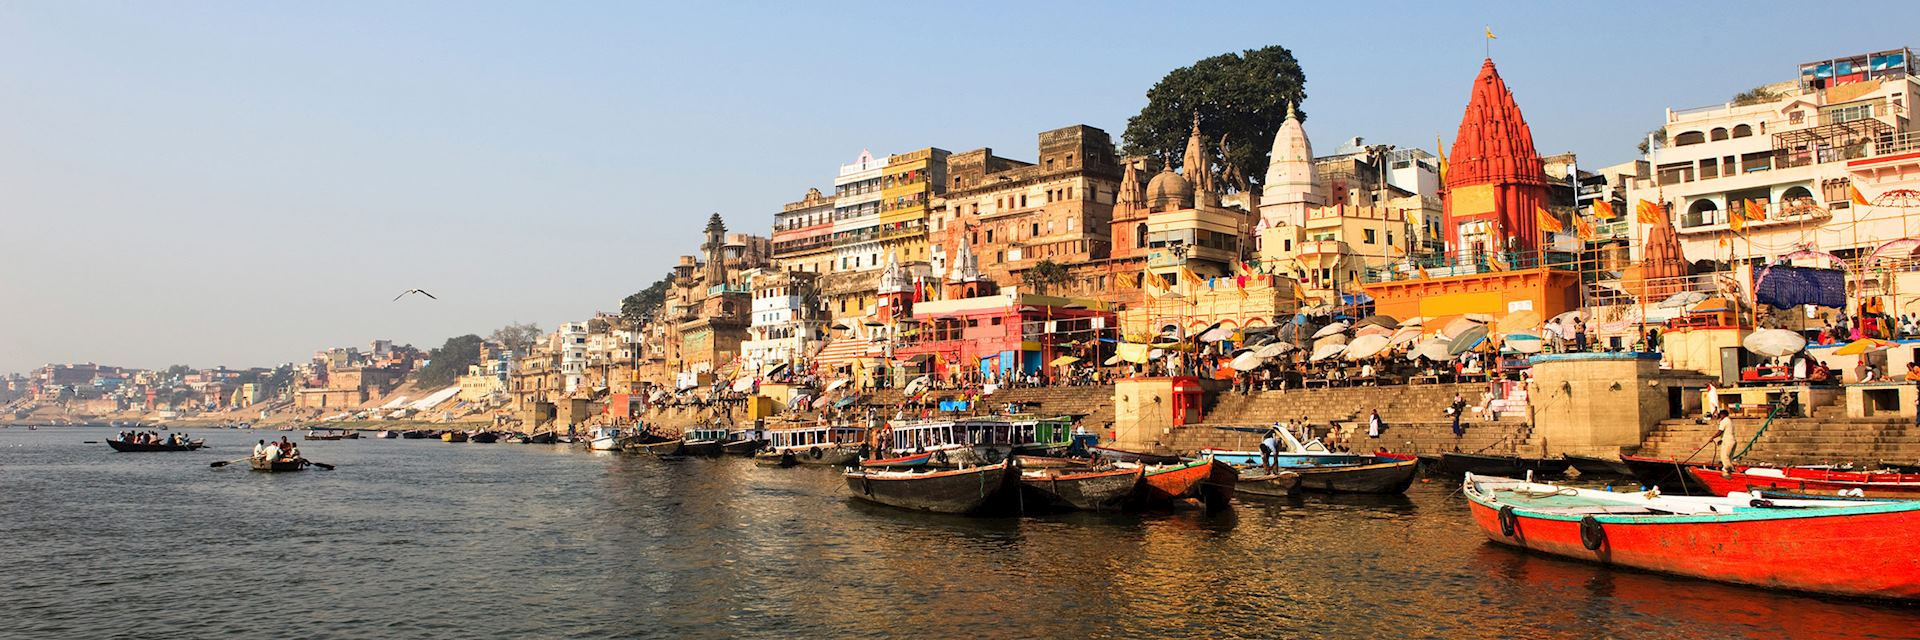 Riverside ghats, Varanasi, India